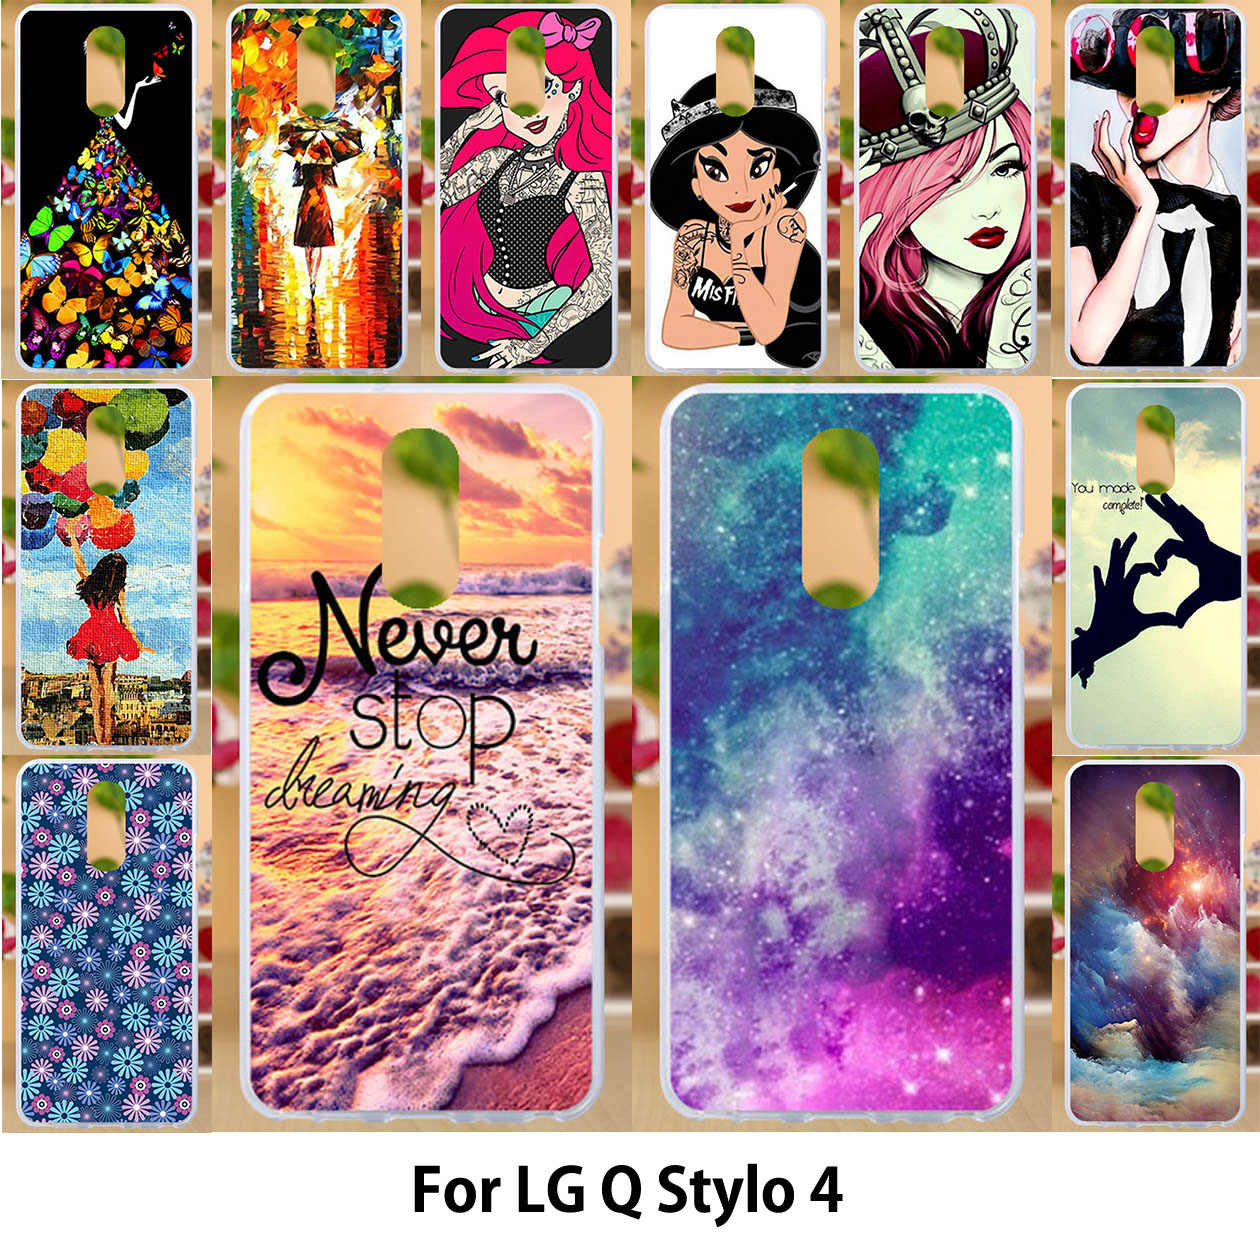 Anunob Case For LG Q Stylo 4 Cases LG Q Stylo 4 Q710MS 6.2 inch for Metro PCS TPU Soft Silicone Cover Painting Star Protector